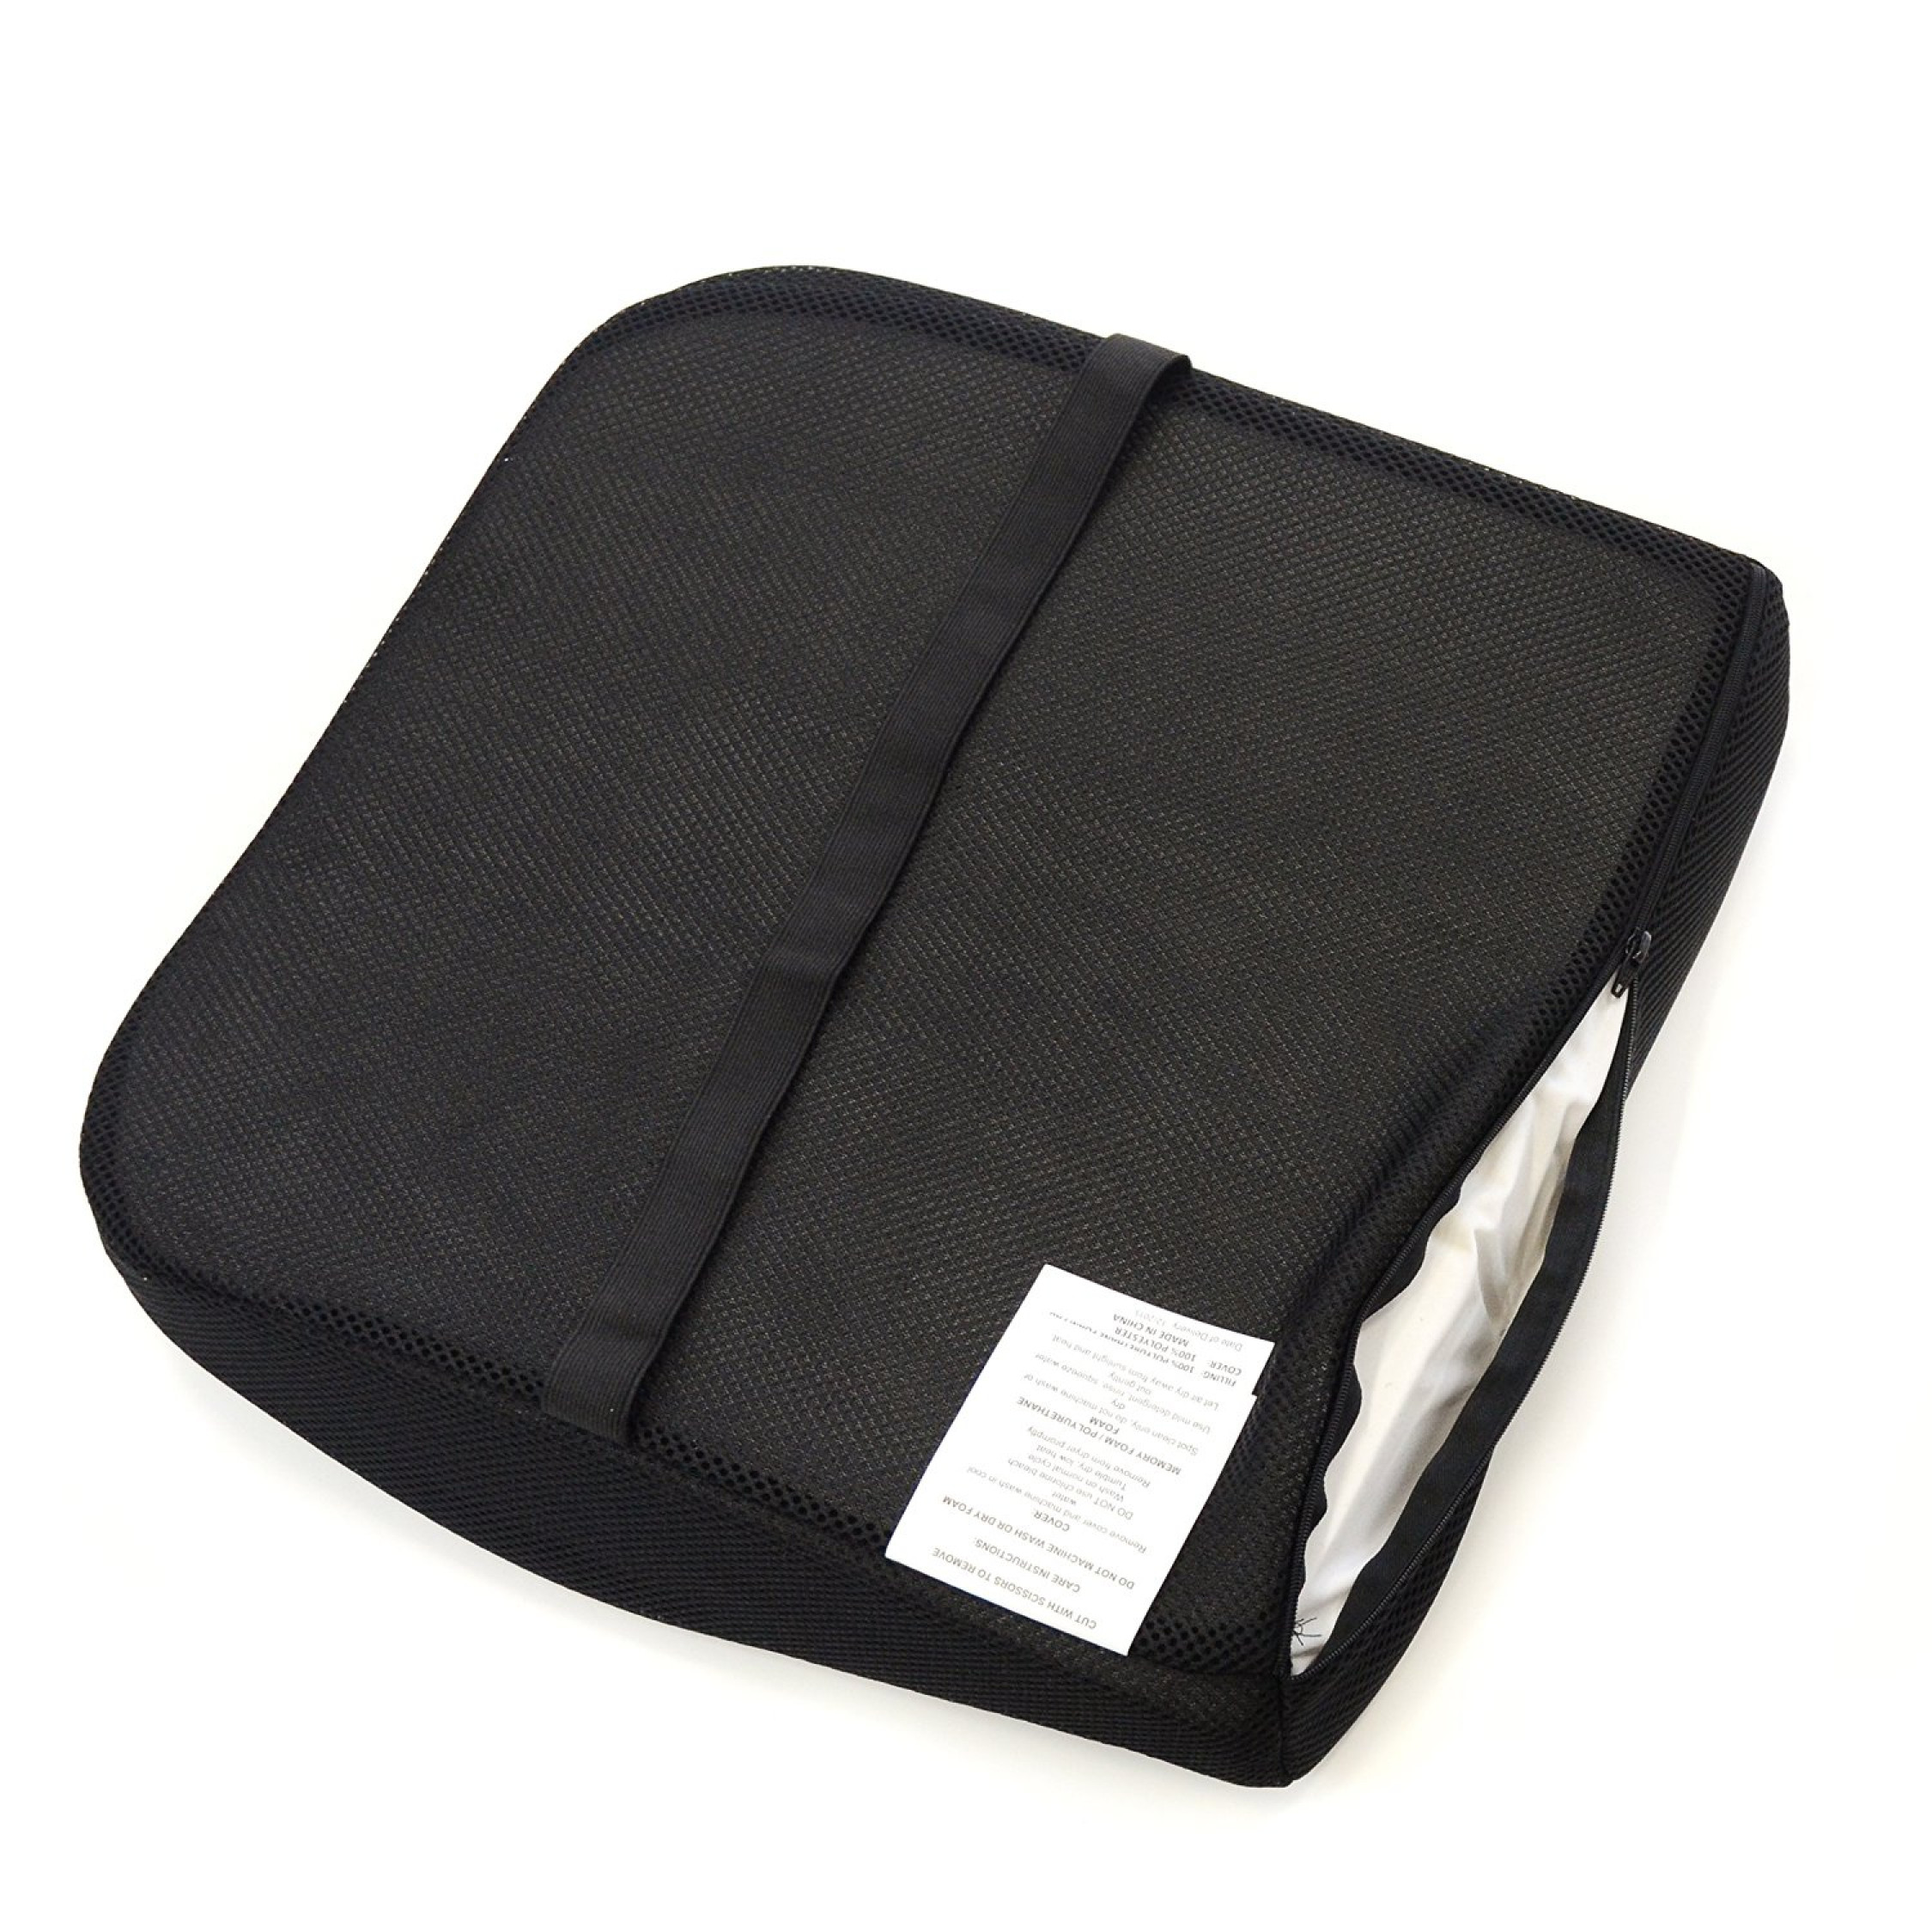 memory foam seat cushion for lower back support & seat wedge